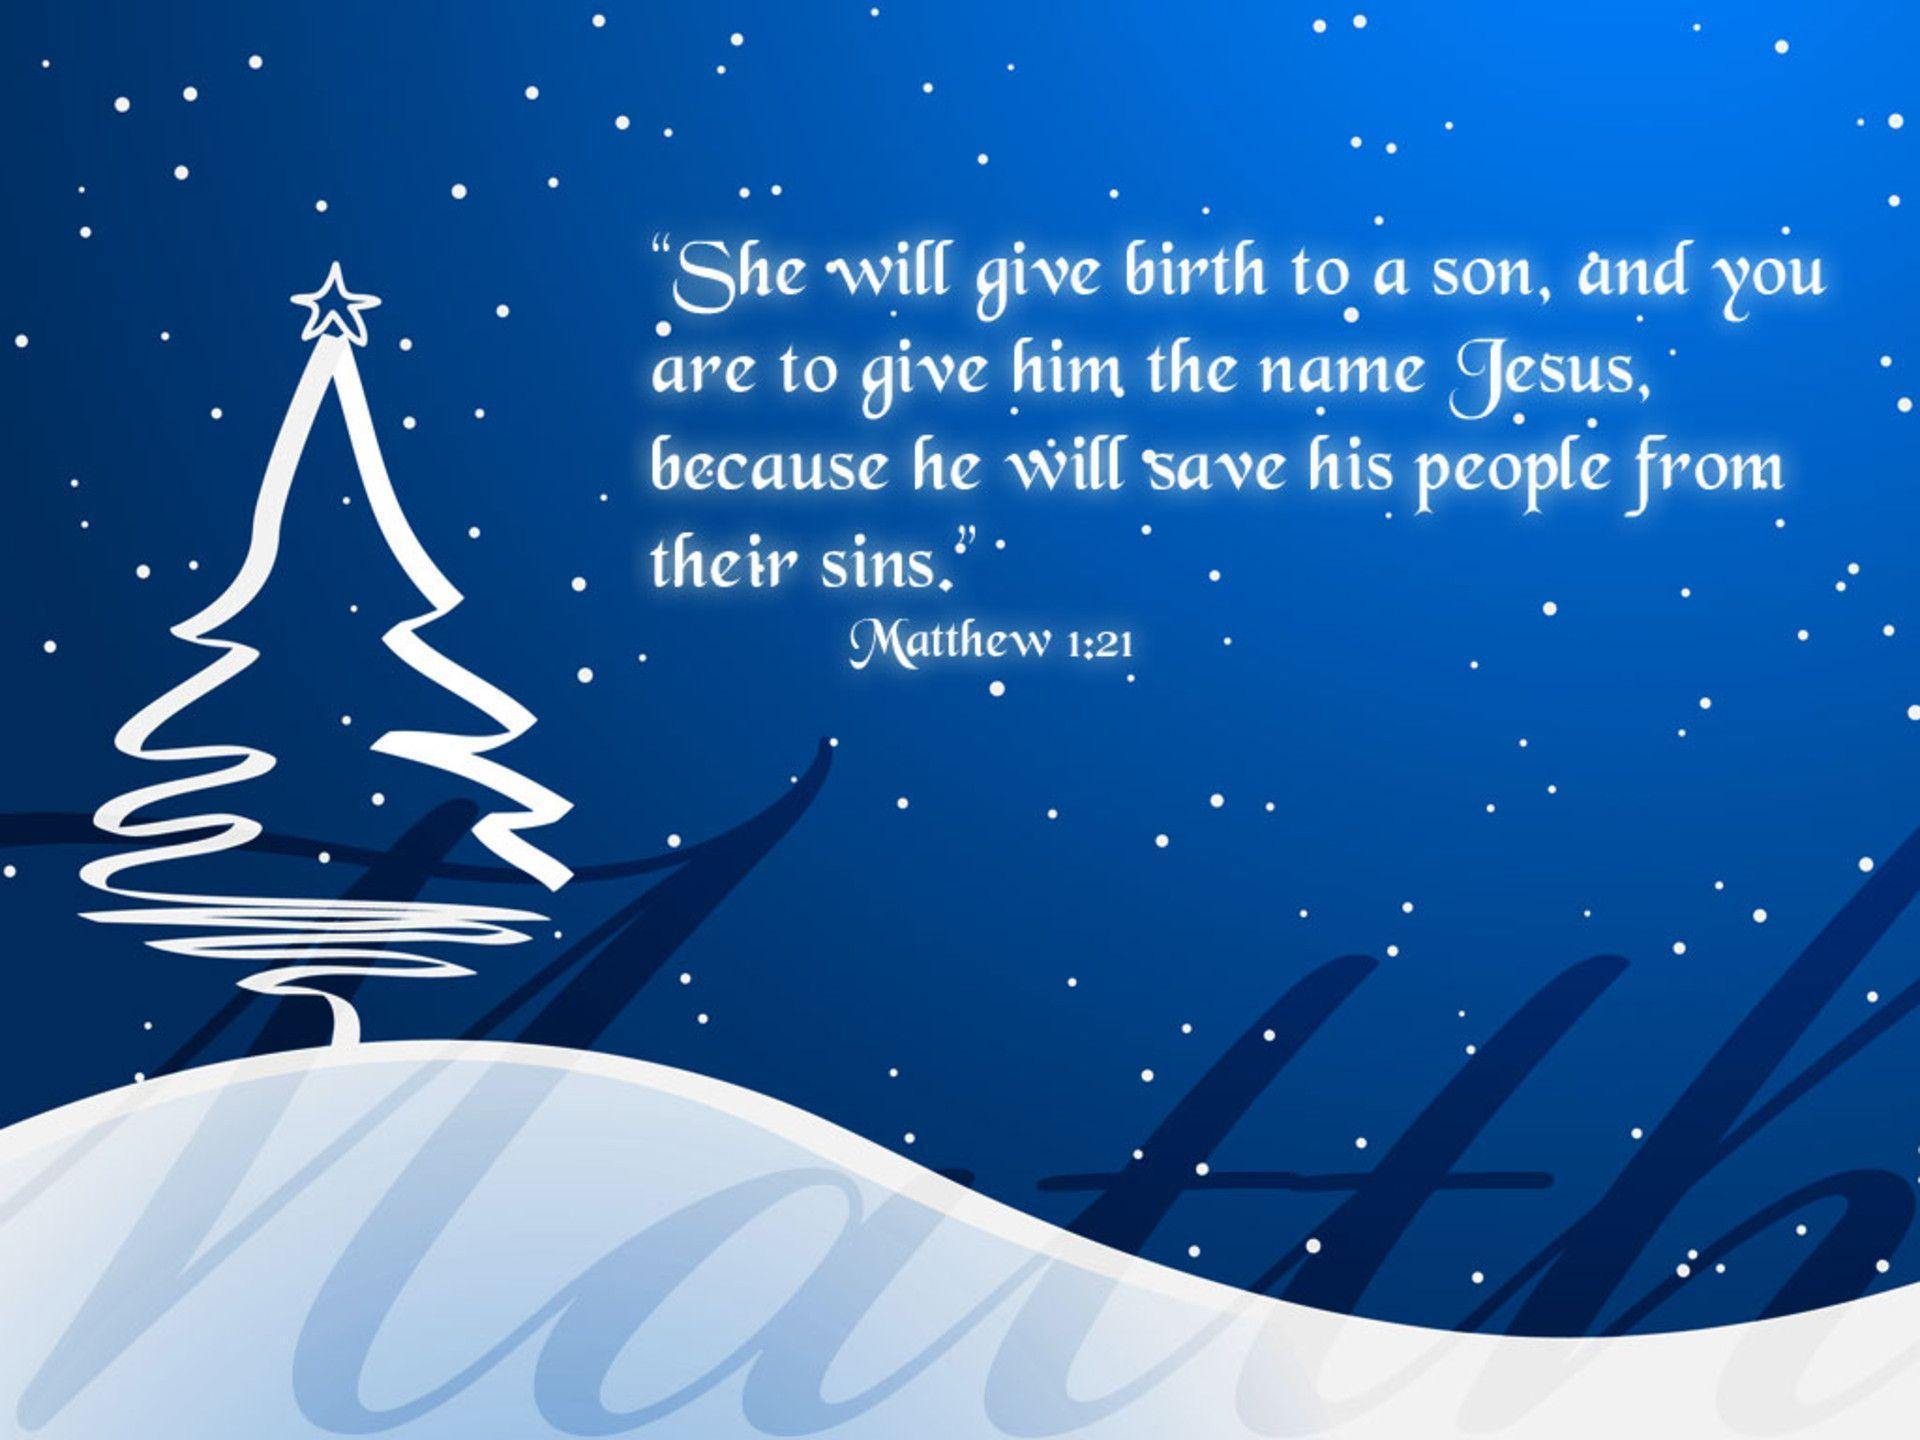 free christian christmas wallpaper - Christian Christmas Wallpaper